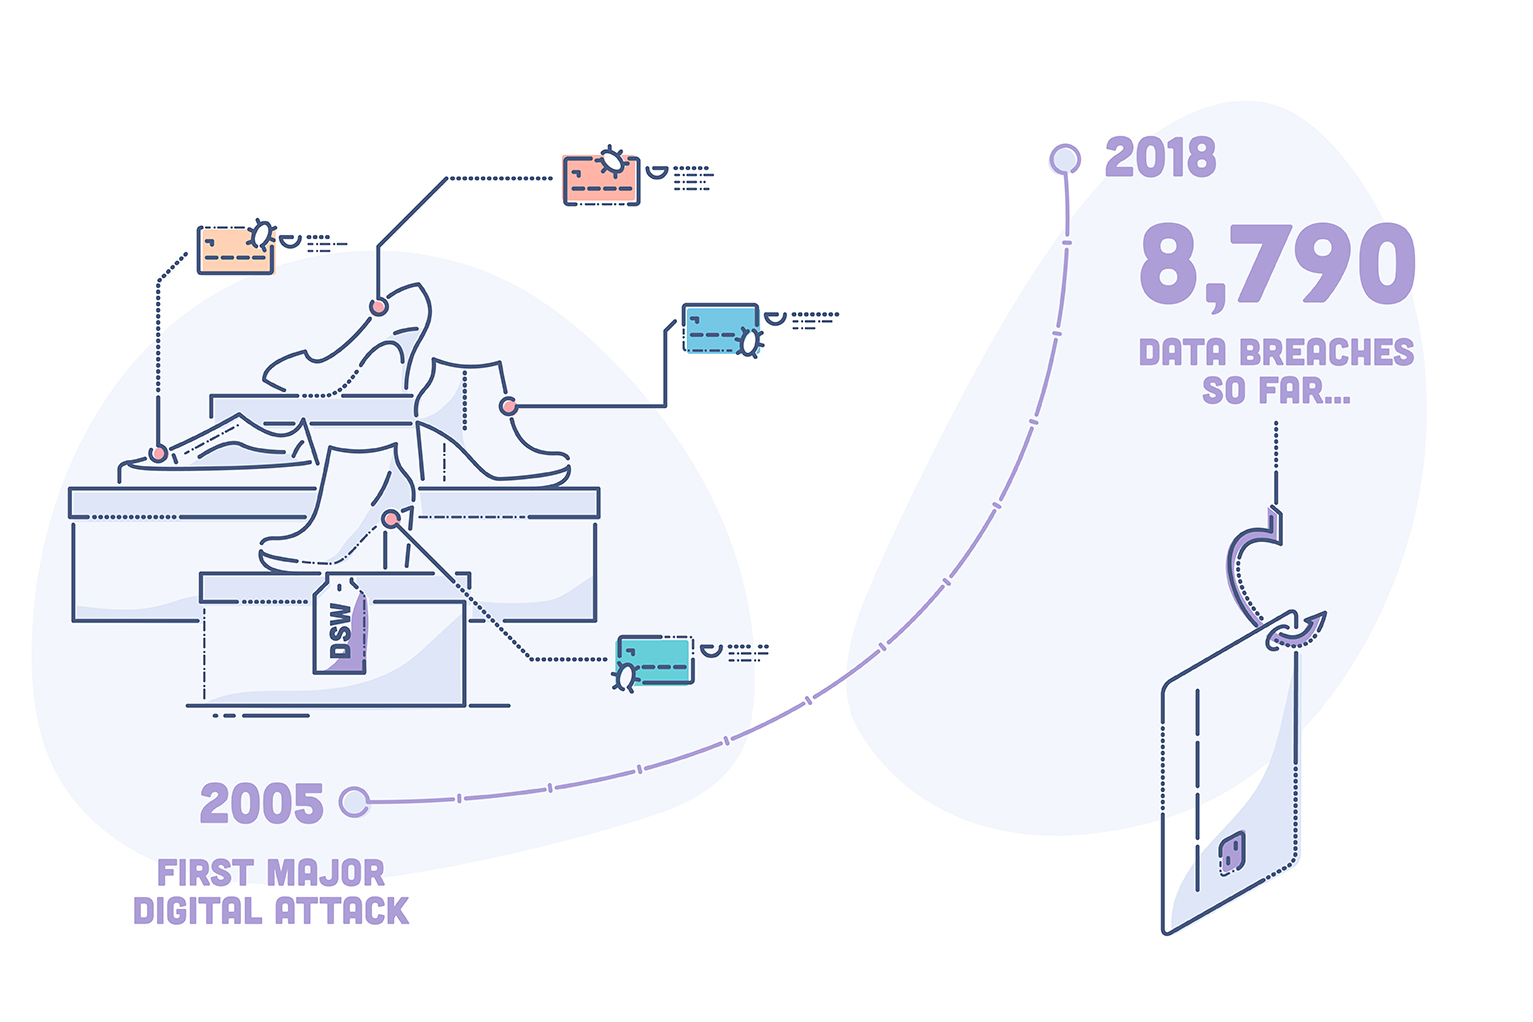 Evolution of data breaches - illustration showing first major digital cyber attack with growth curve showing data breaches in 2018